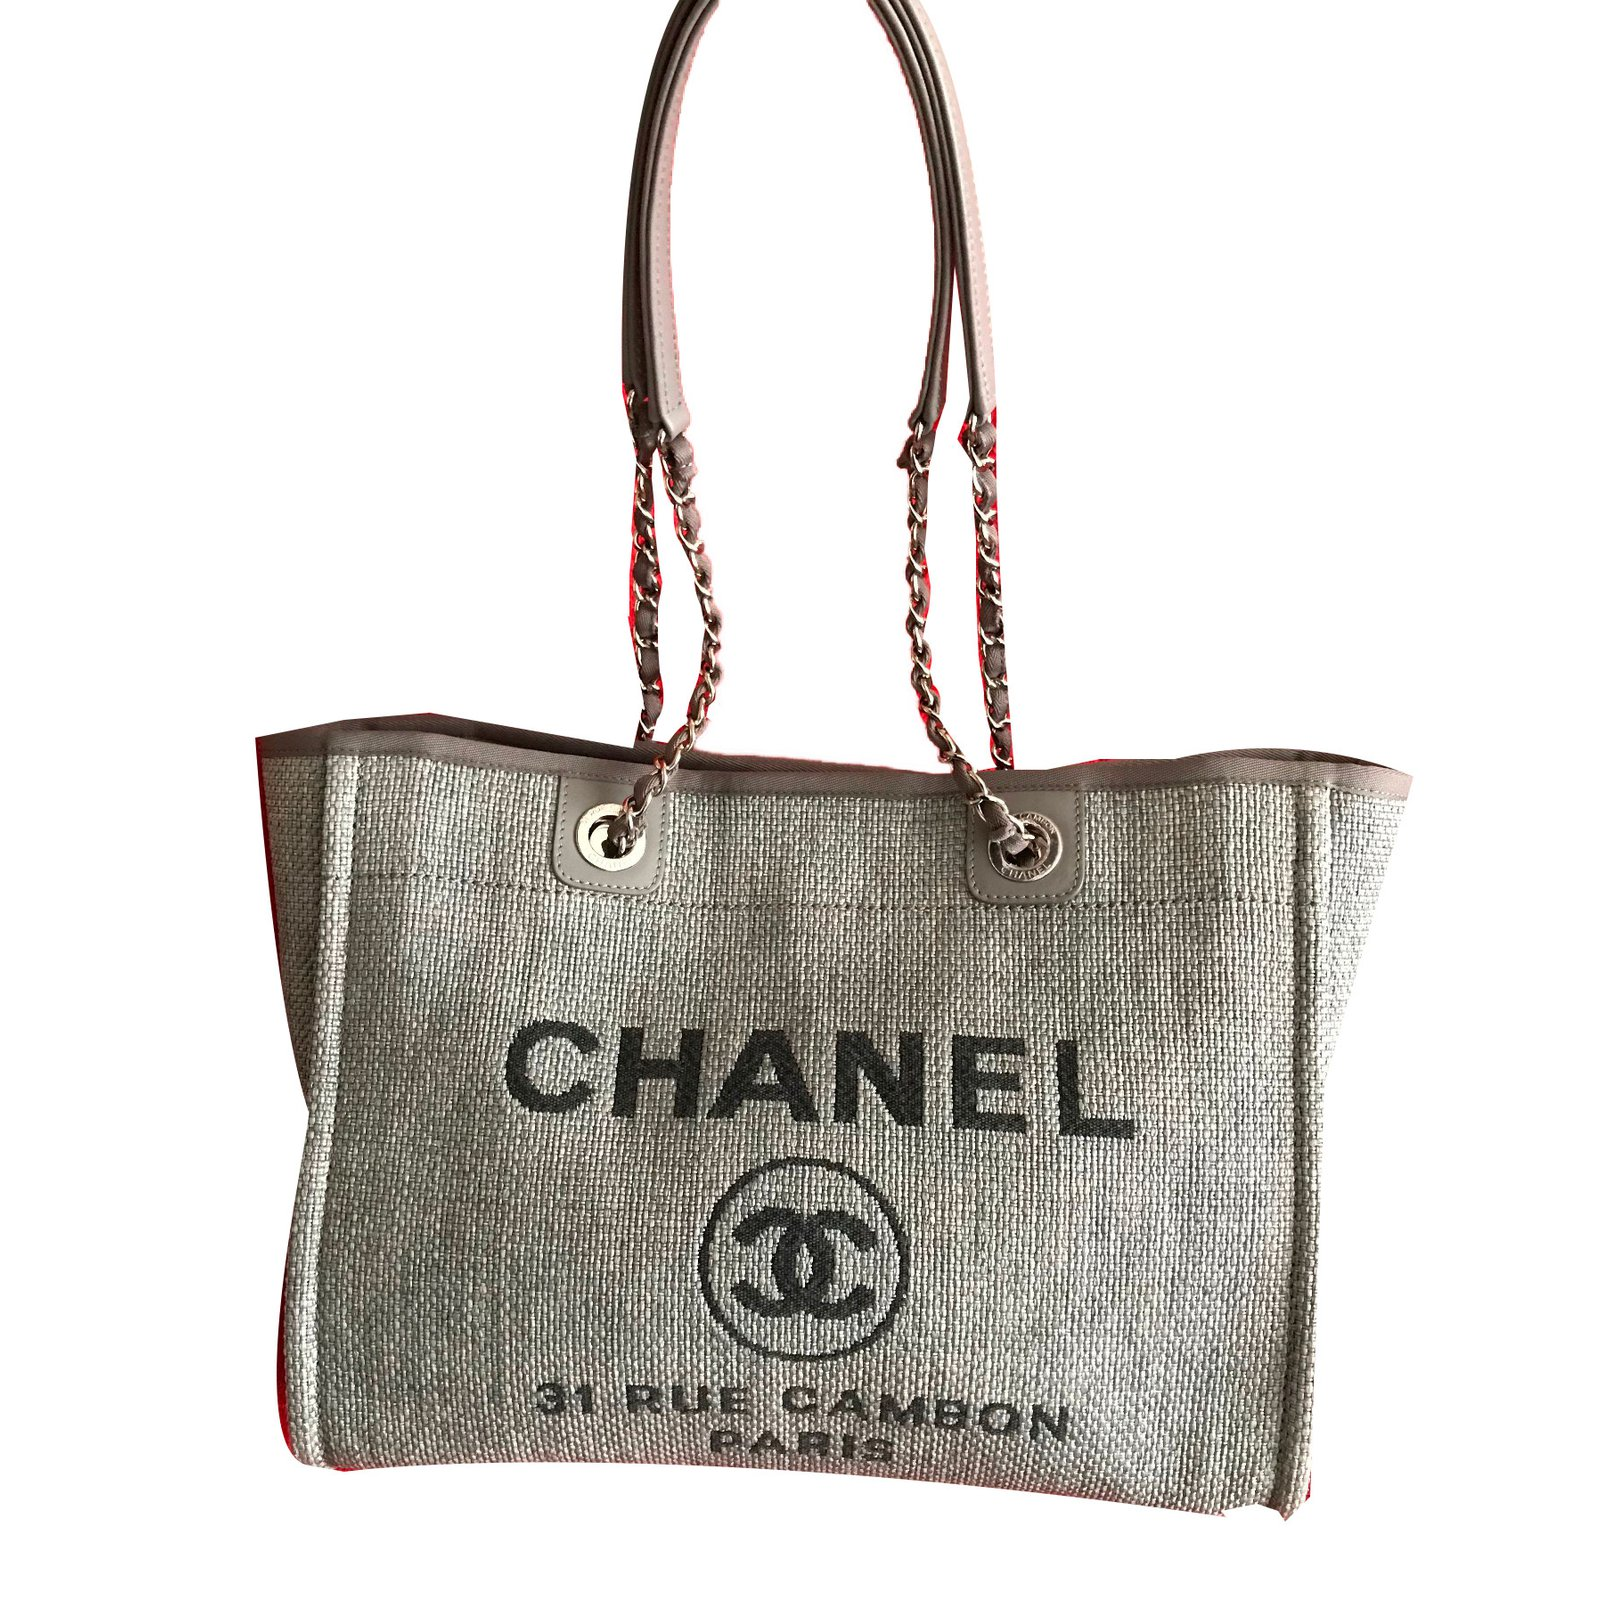 d6c18d789c6b Chanel CHANEL Deauville Tote in Grey Canvas Handbags Cloth Grey ref.58349